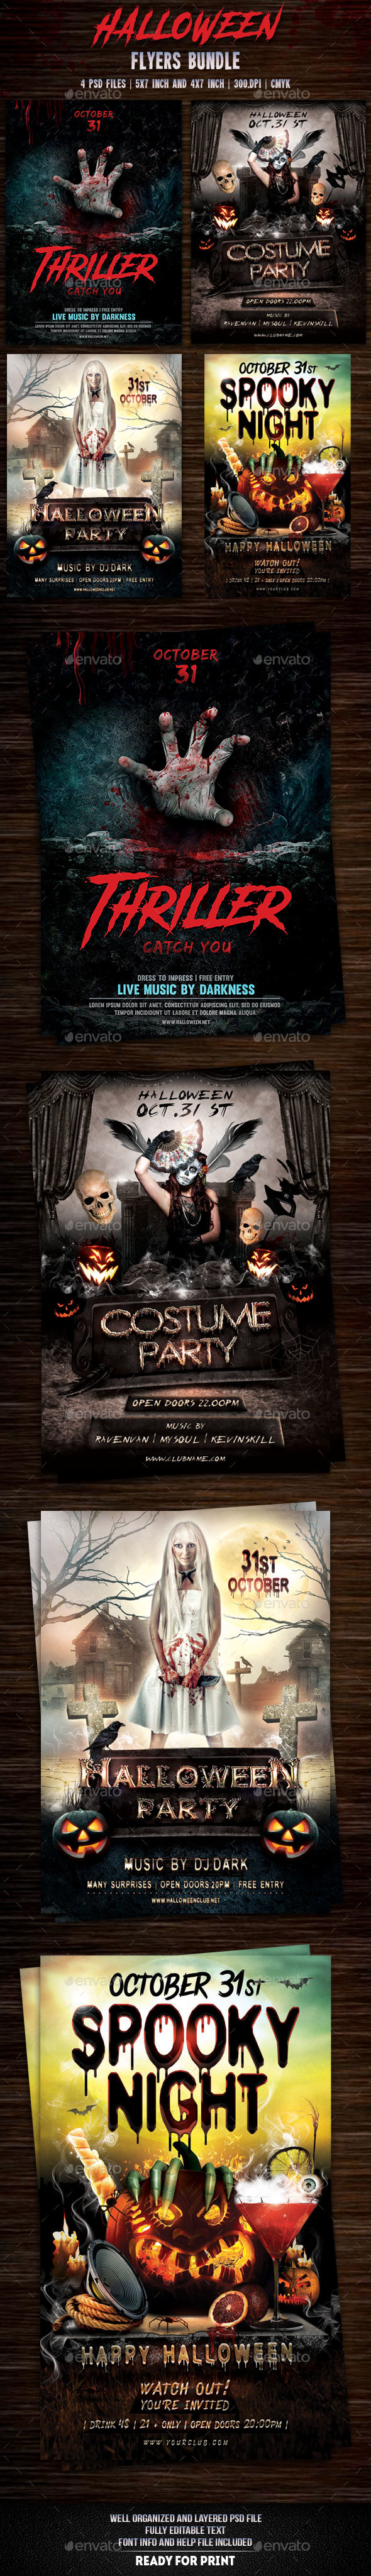 Halloween Flyers Bundle v3 - Flyers Print Templates